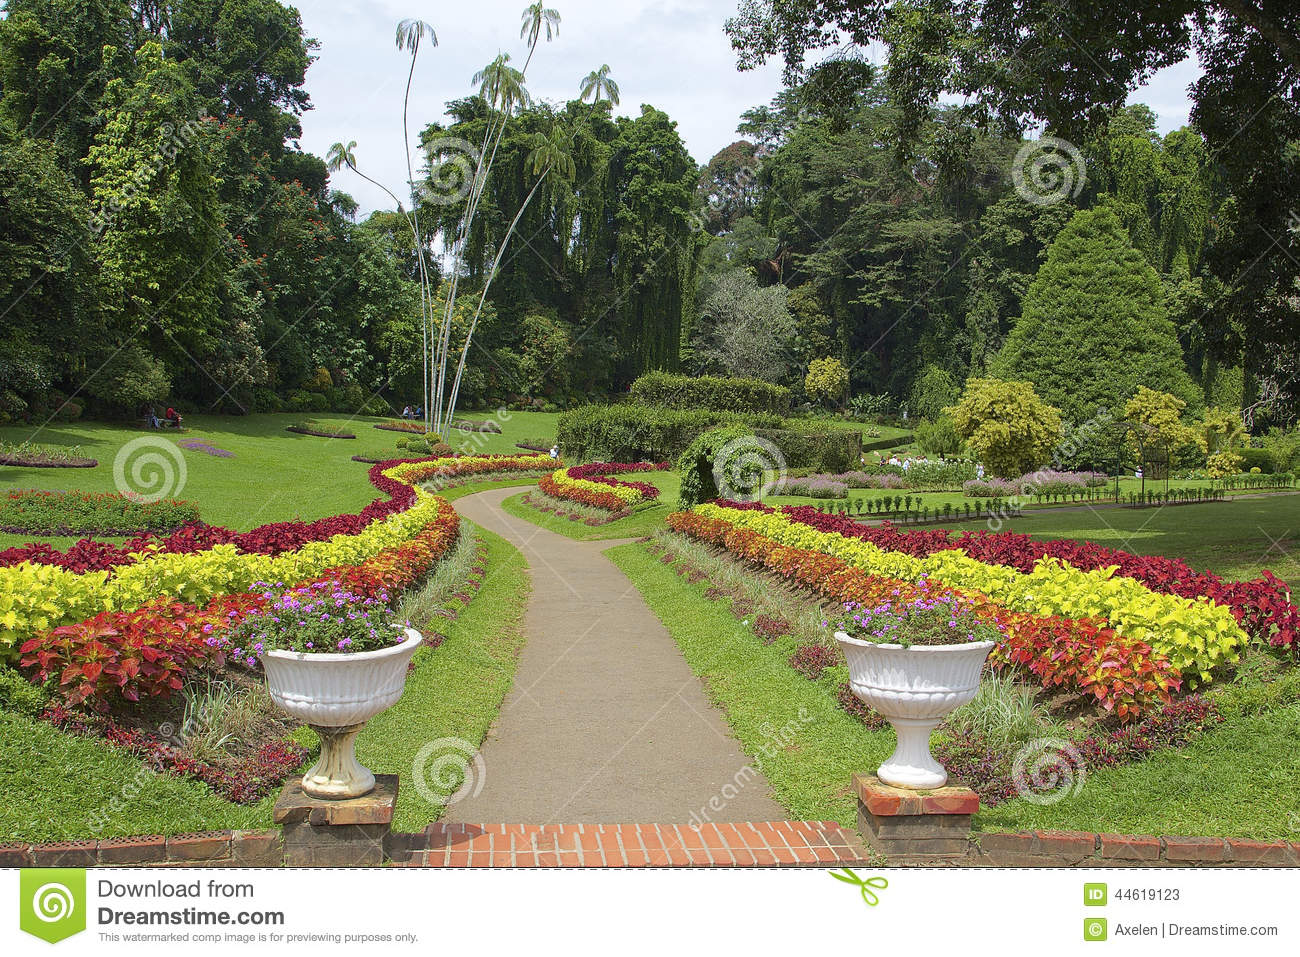 Jardin botanique royal peradeniya sri lanka photo stock for Jardin royal